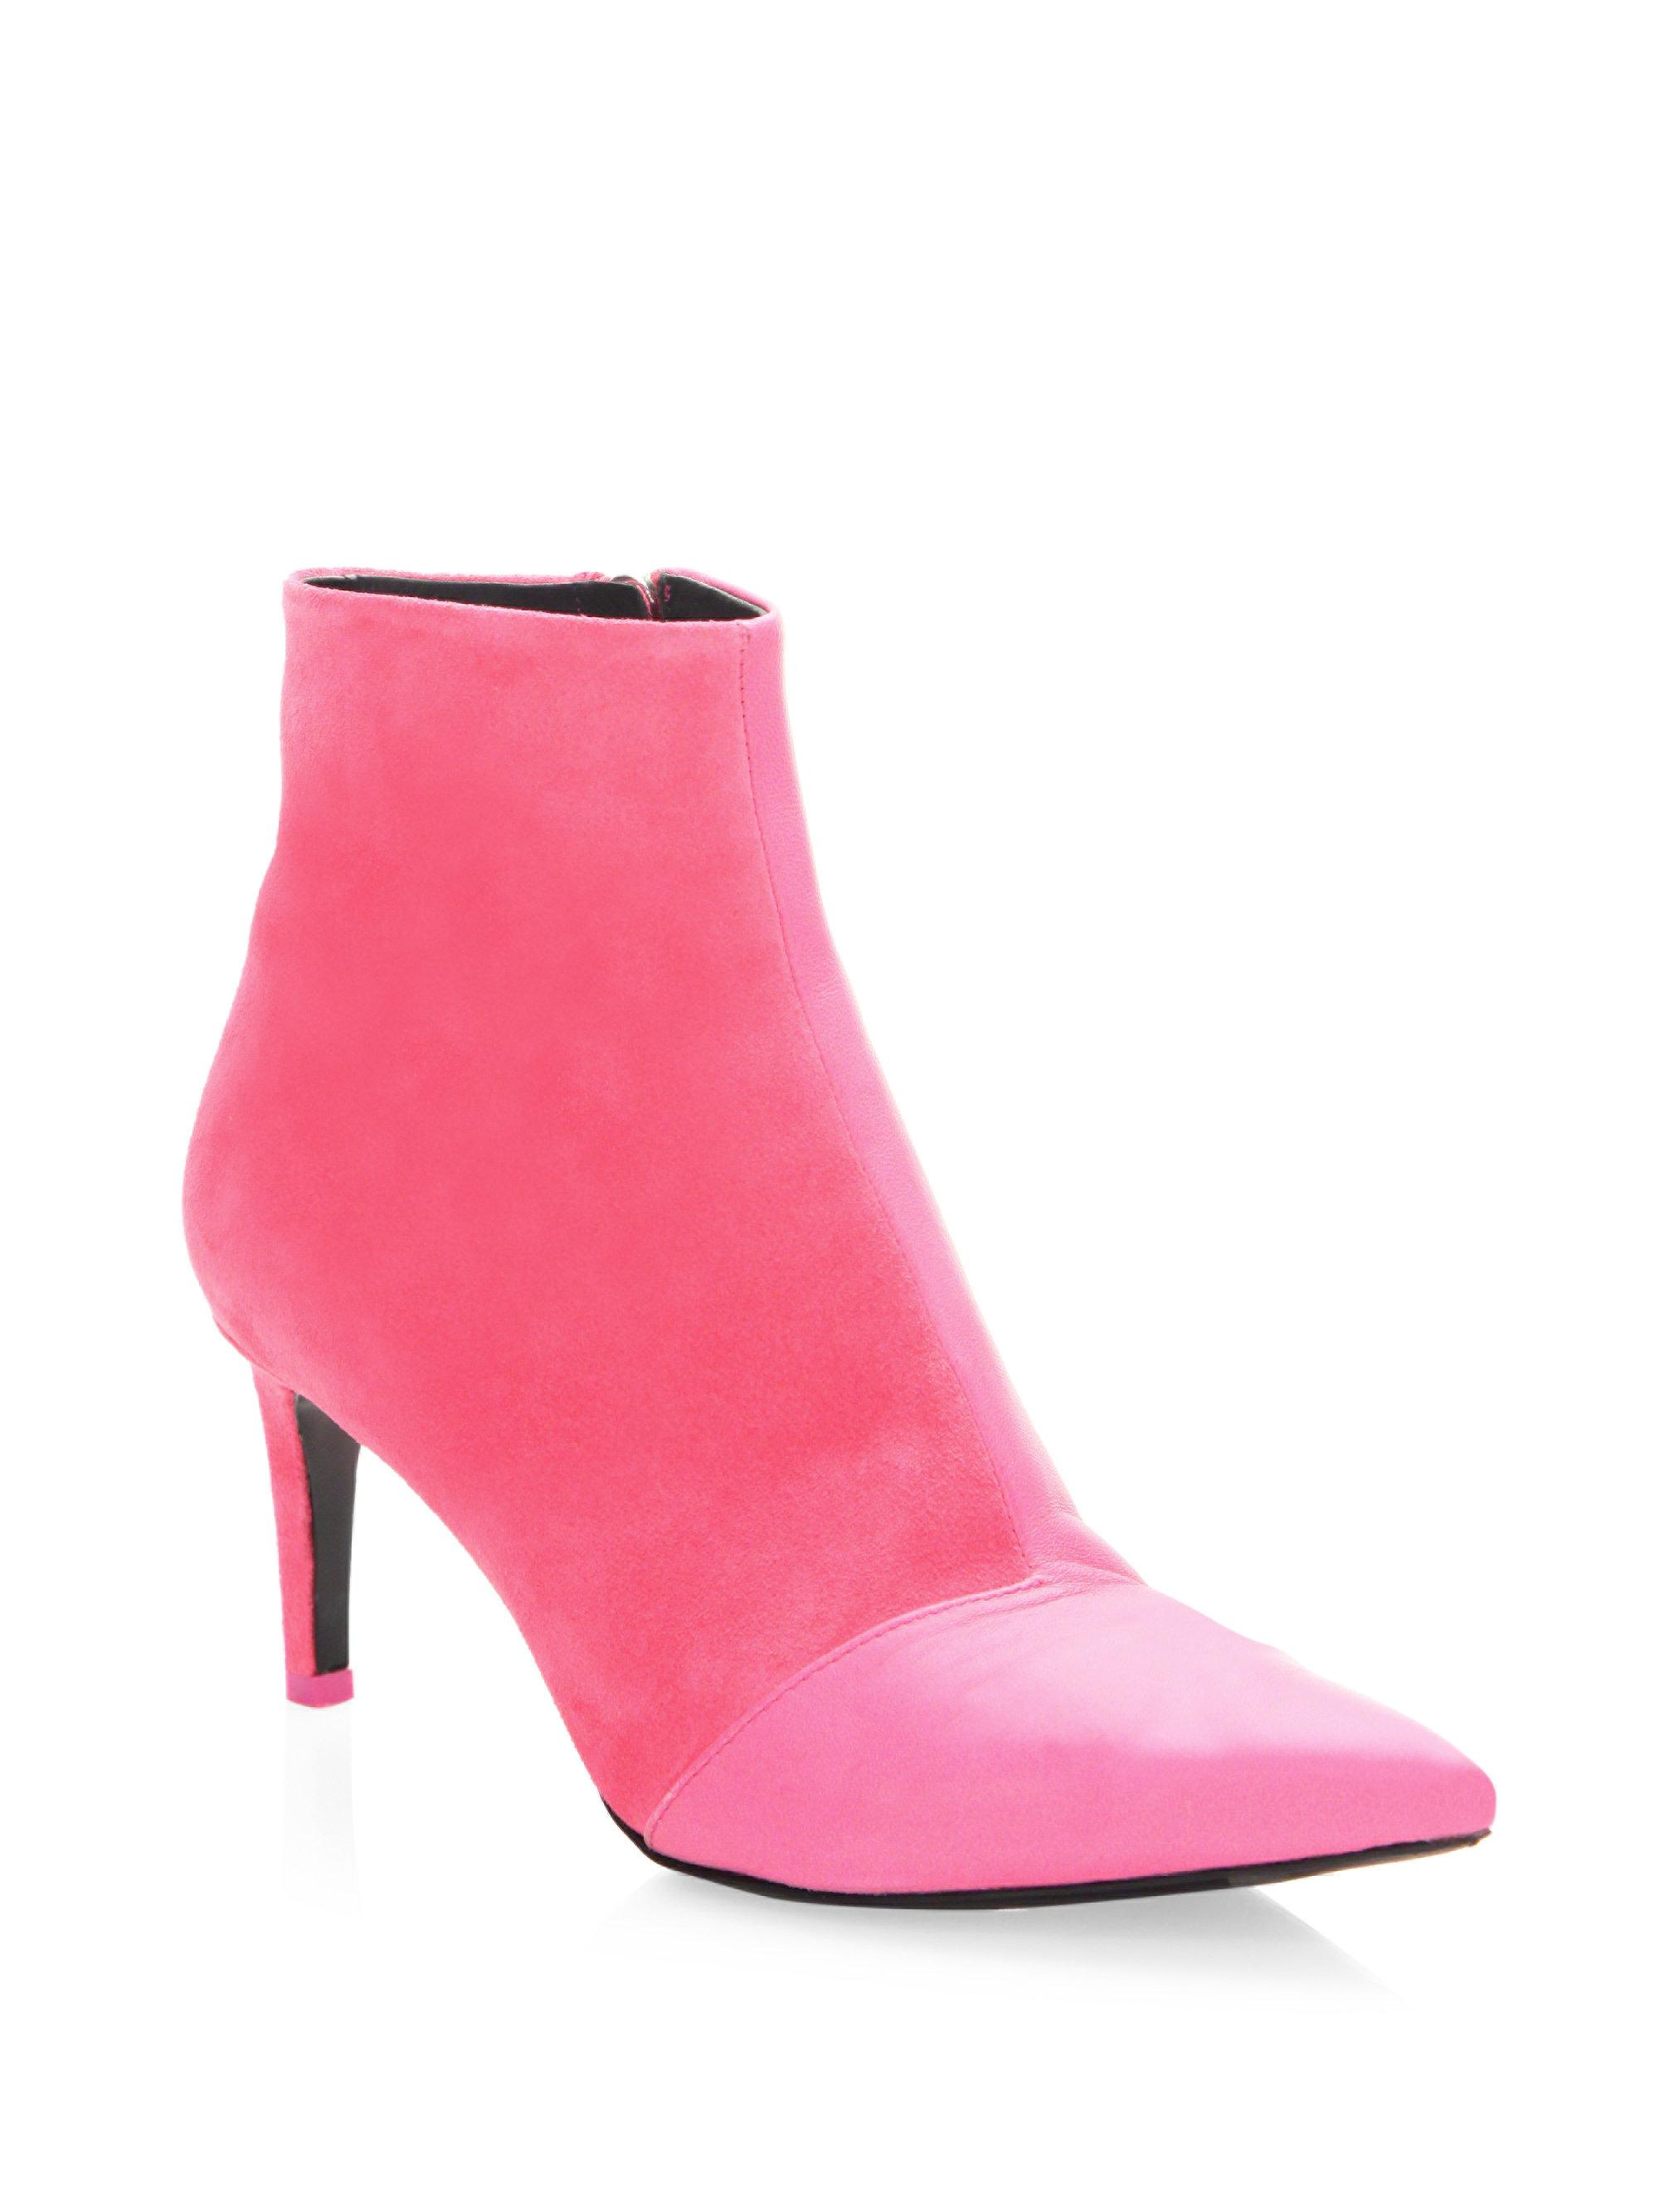 buy cheap view authentic online Rag & Bone Beha Patent Leather Ankle Boots extremely for sale cheap top quality free shipping visa payment saRqO